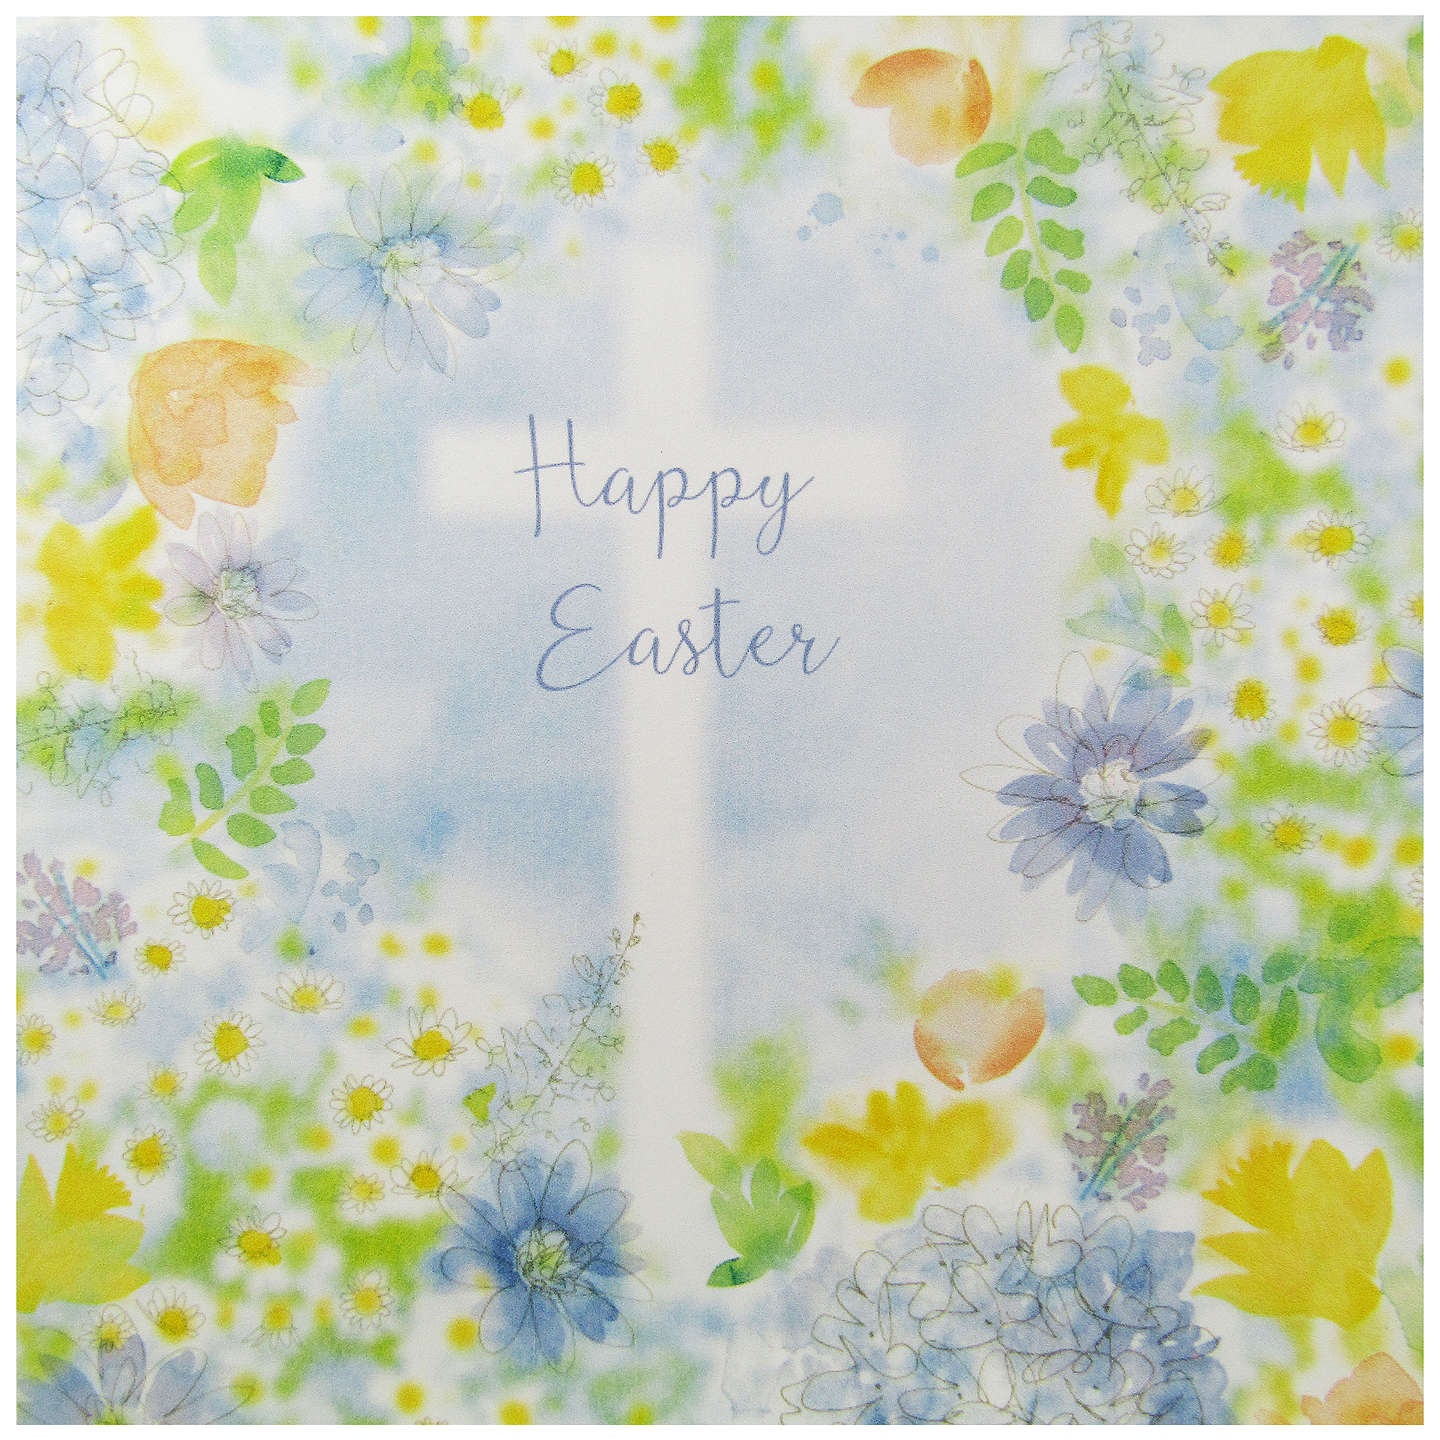 Saffron Cards And Gifts Happy Easter Greeting Card At John Lewis